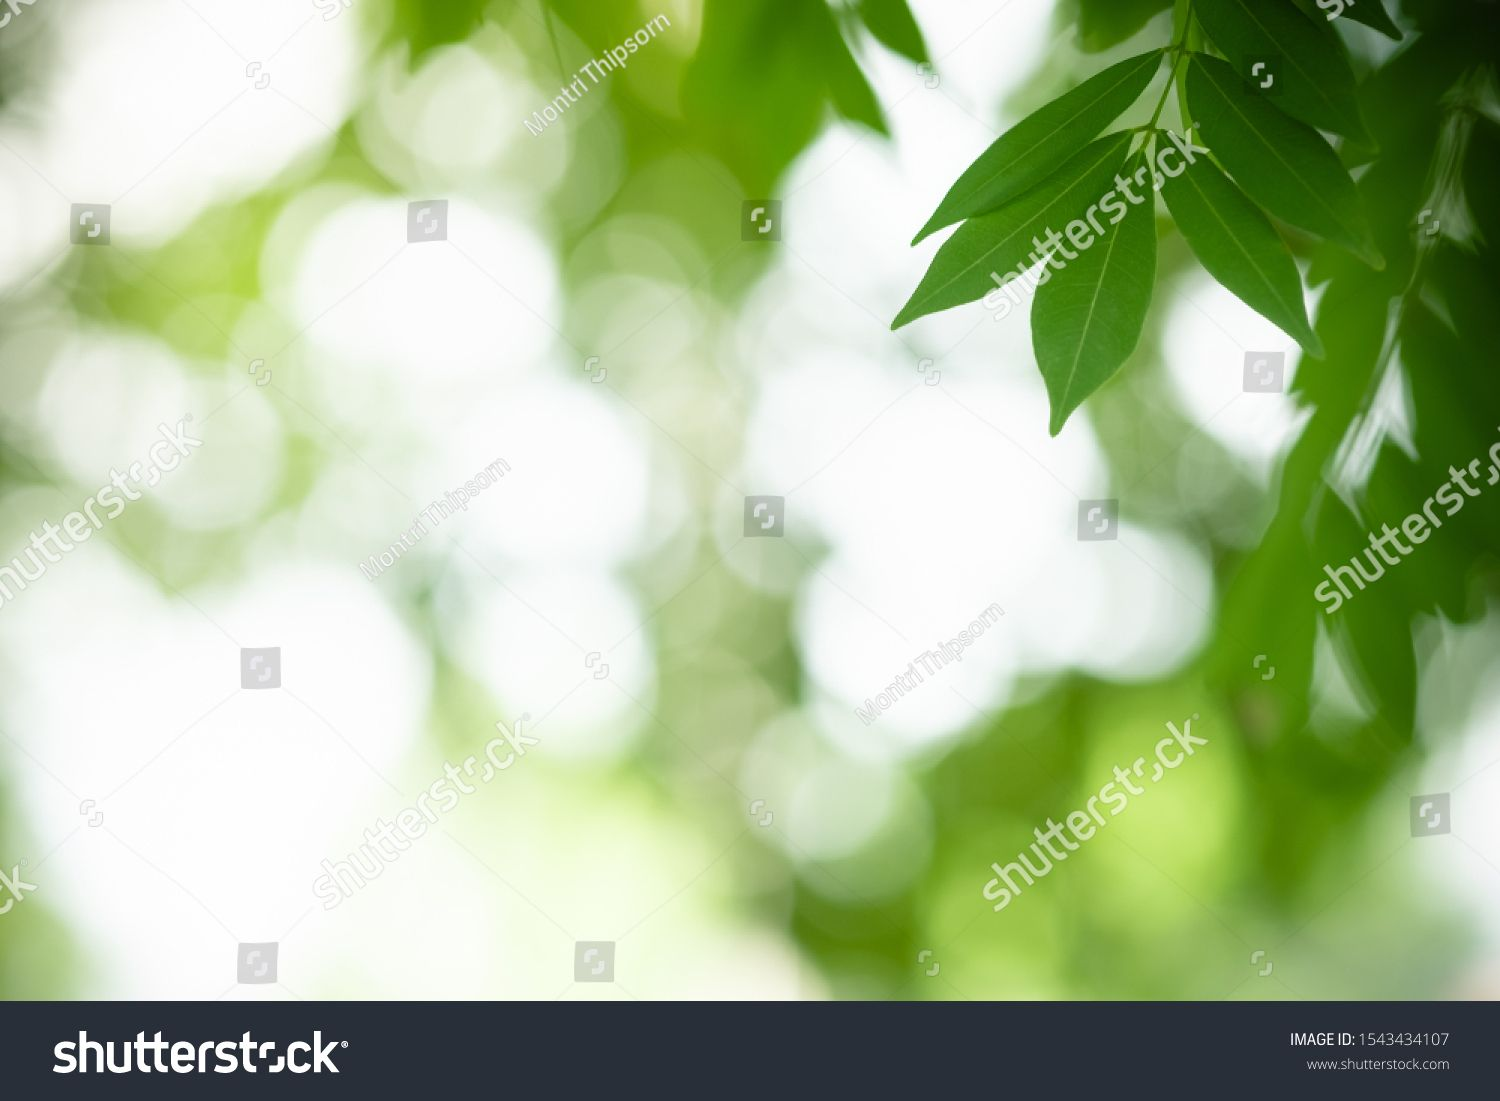 Close up of nature view green leaf on blurred greenery background under sunlight with bokeh and copy space using as background natural plants landscape, ecology wallpaper concept. #Ad , #AD, #greenery#blurred#sunlight#background